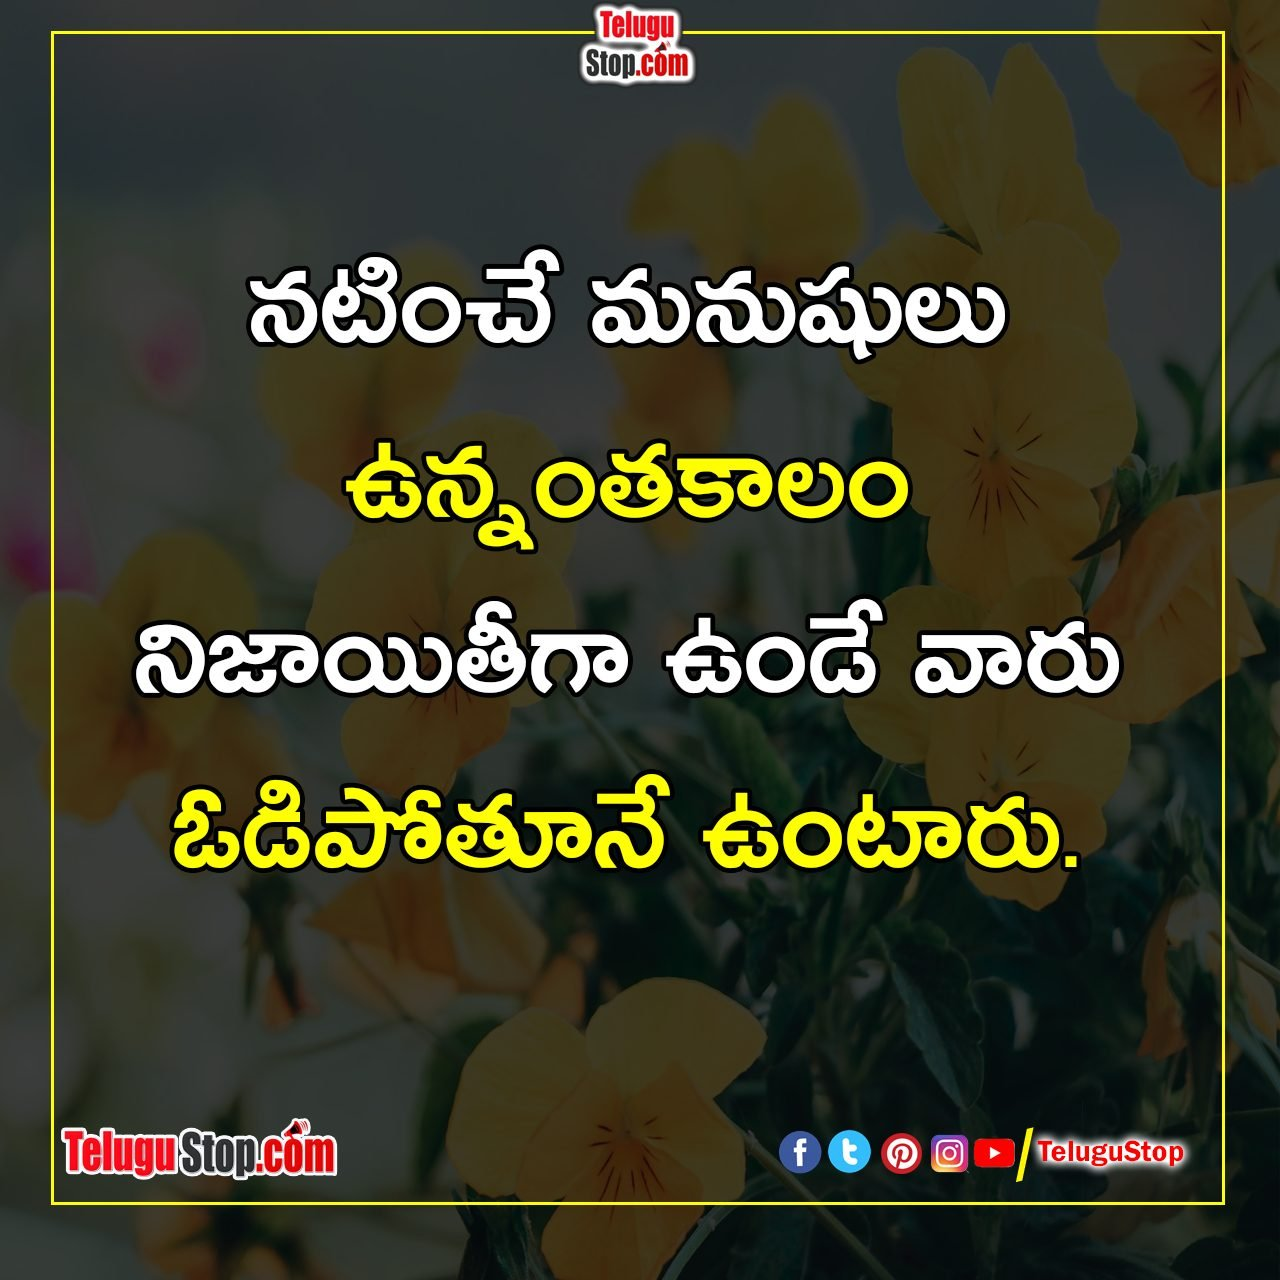 Telugu Acting Men Inspiriational Quotes, Self Cultivation Inspirational Quotes, The Backstroke Comes From Behind Inspirational Quotes, True Life Facts Inspirational Quotes-Telugu Daily Quotes - Inspirational/Motivational/Love/Friendship/Good Morning Quote